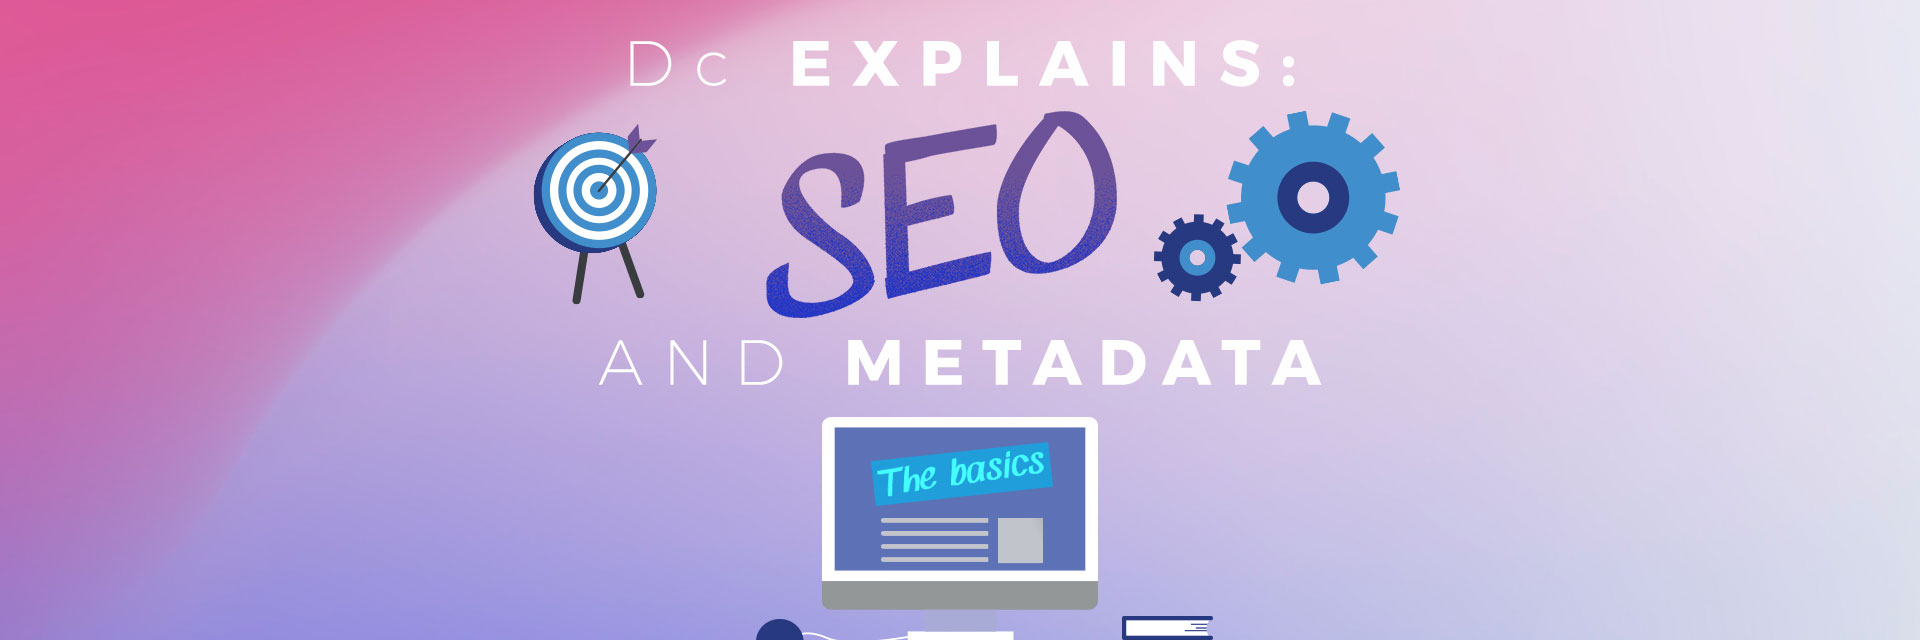 Dc Explains: SEO Metadata… The Wonder Behind the Web